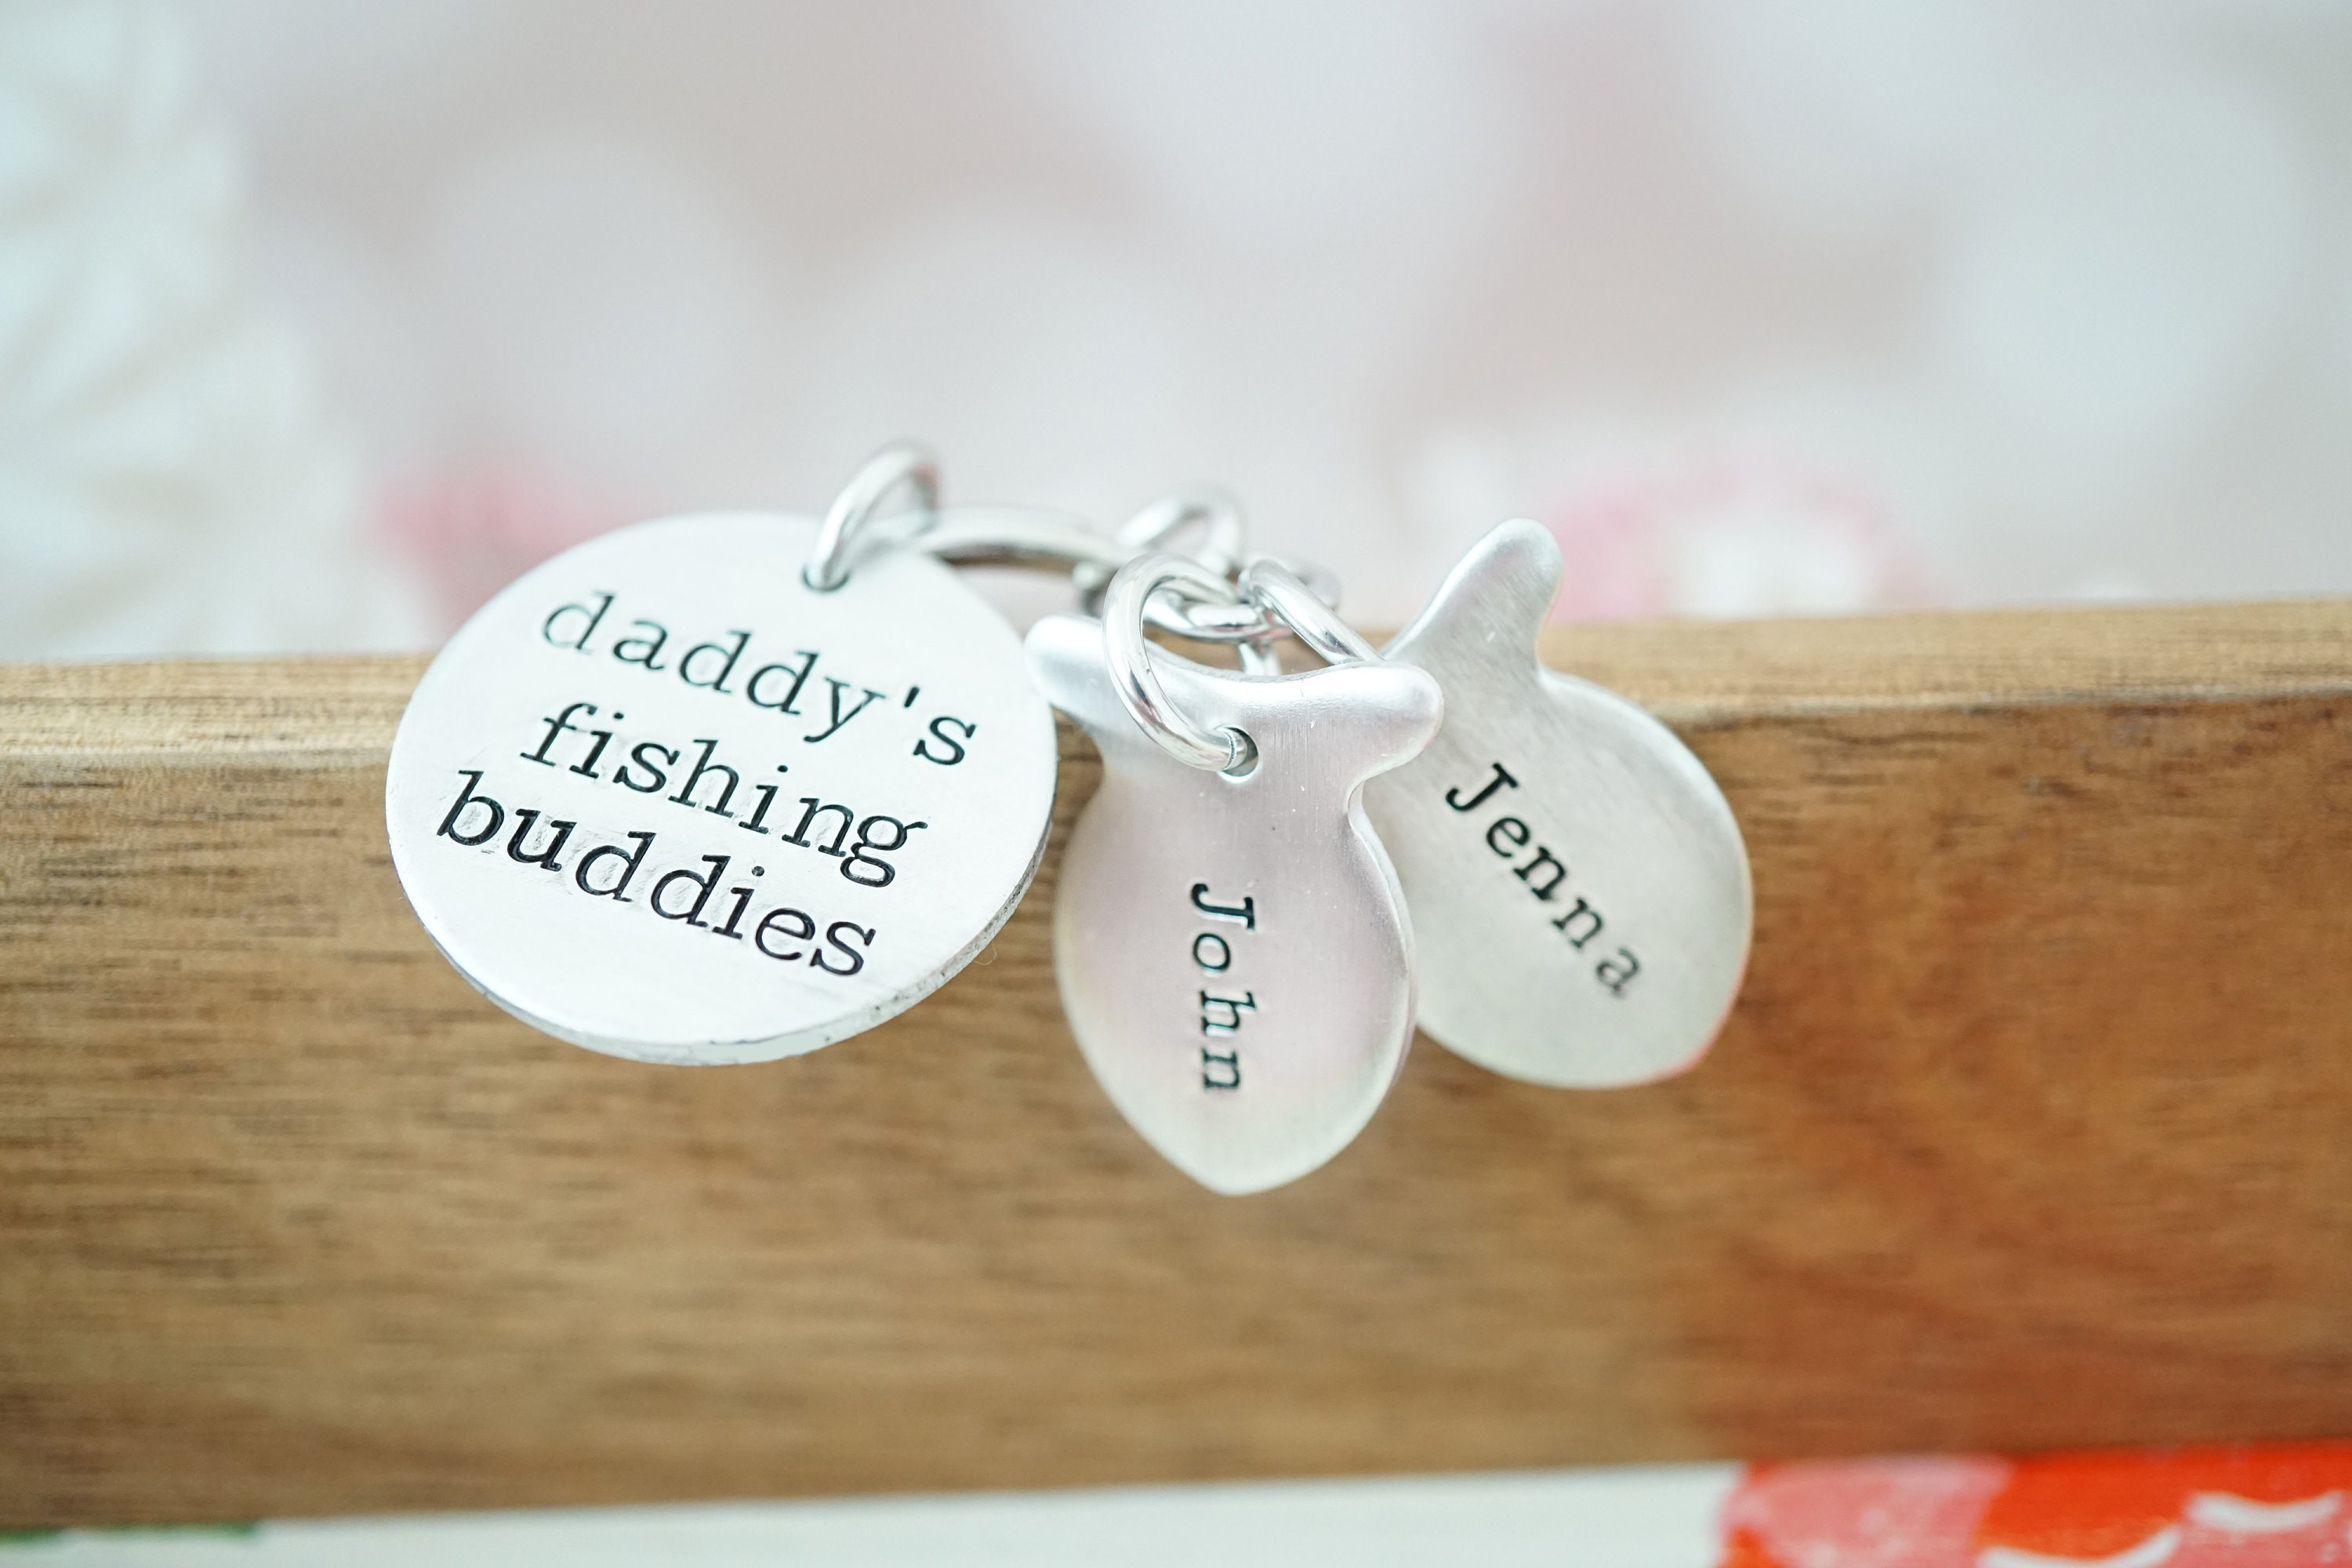 daddy s fishing buddies key chain father s day gift gifts for